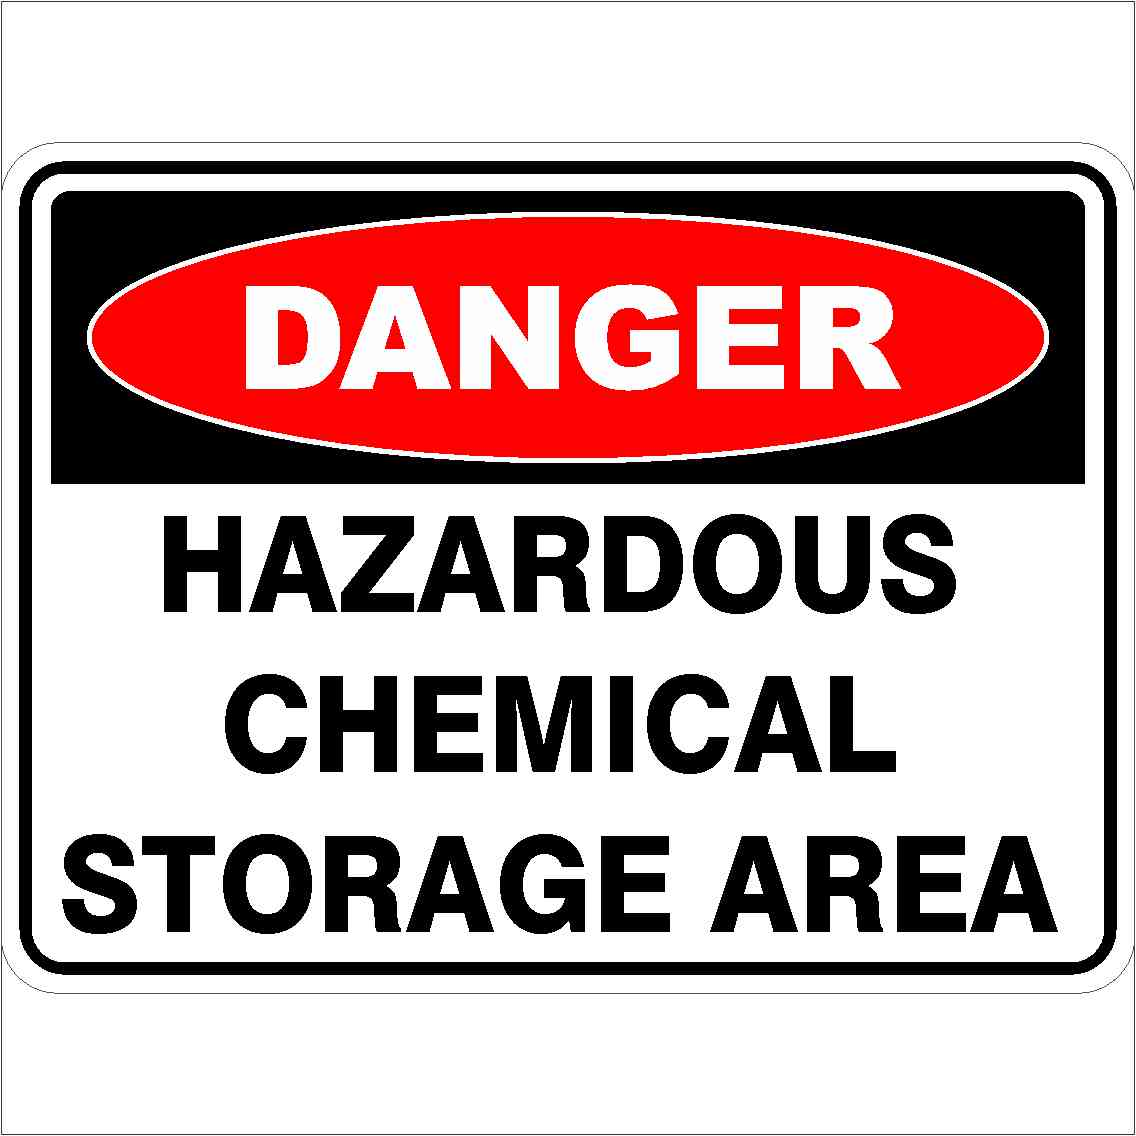 Danger Signs HAZARDOUS CHEMICAL STORAGE AREA